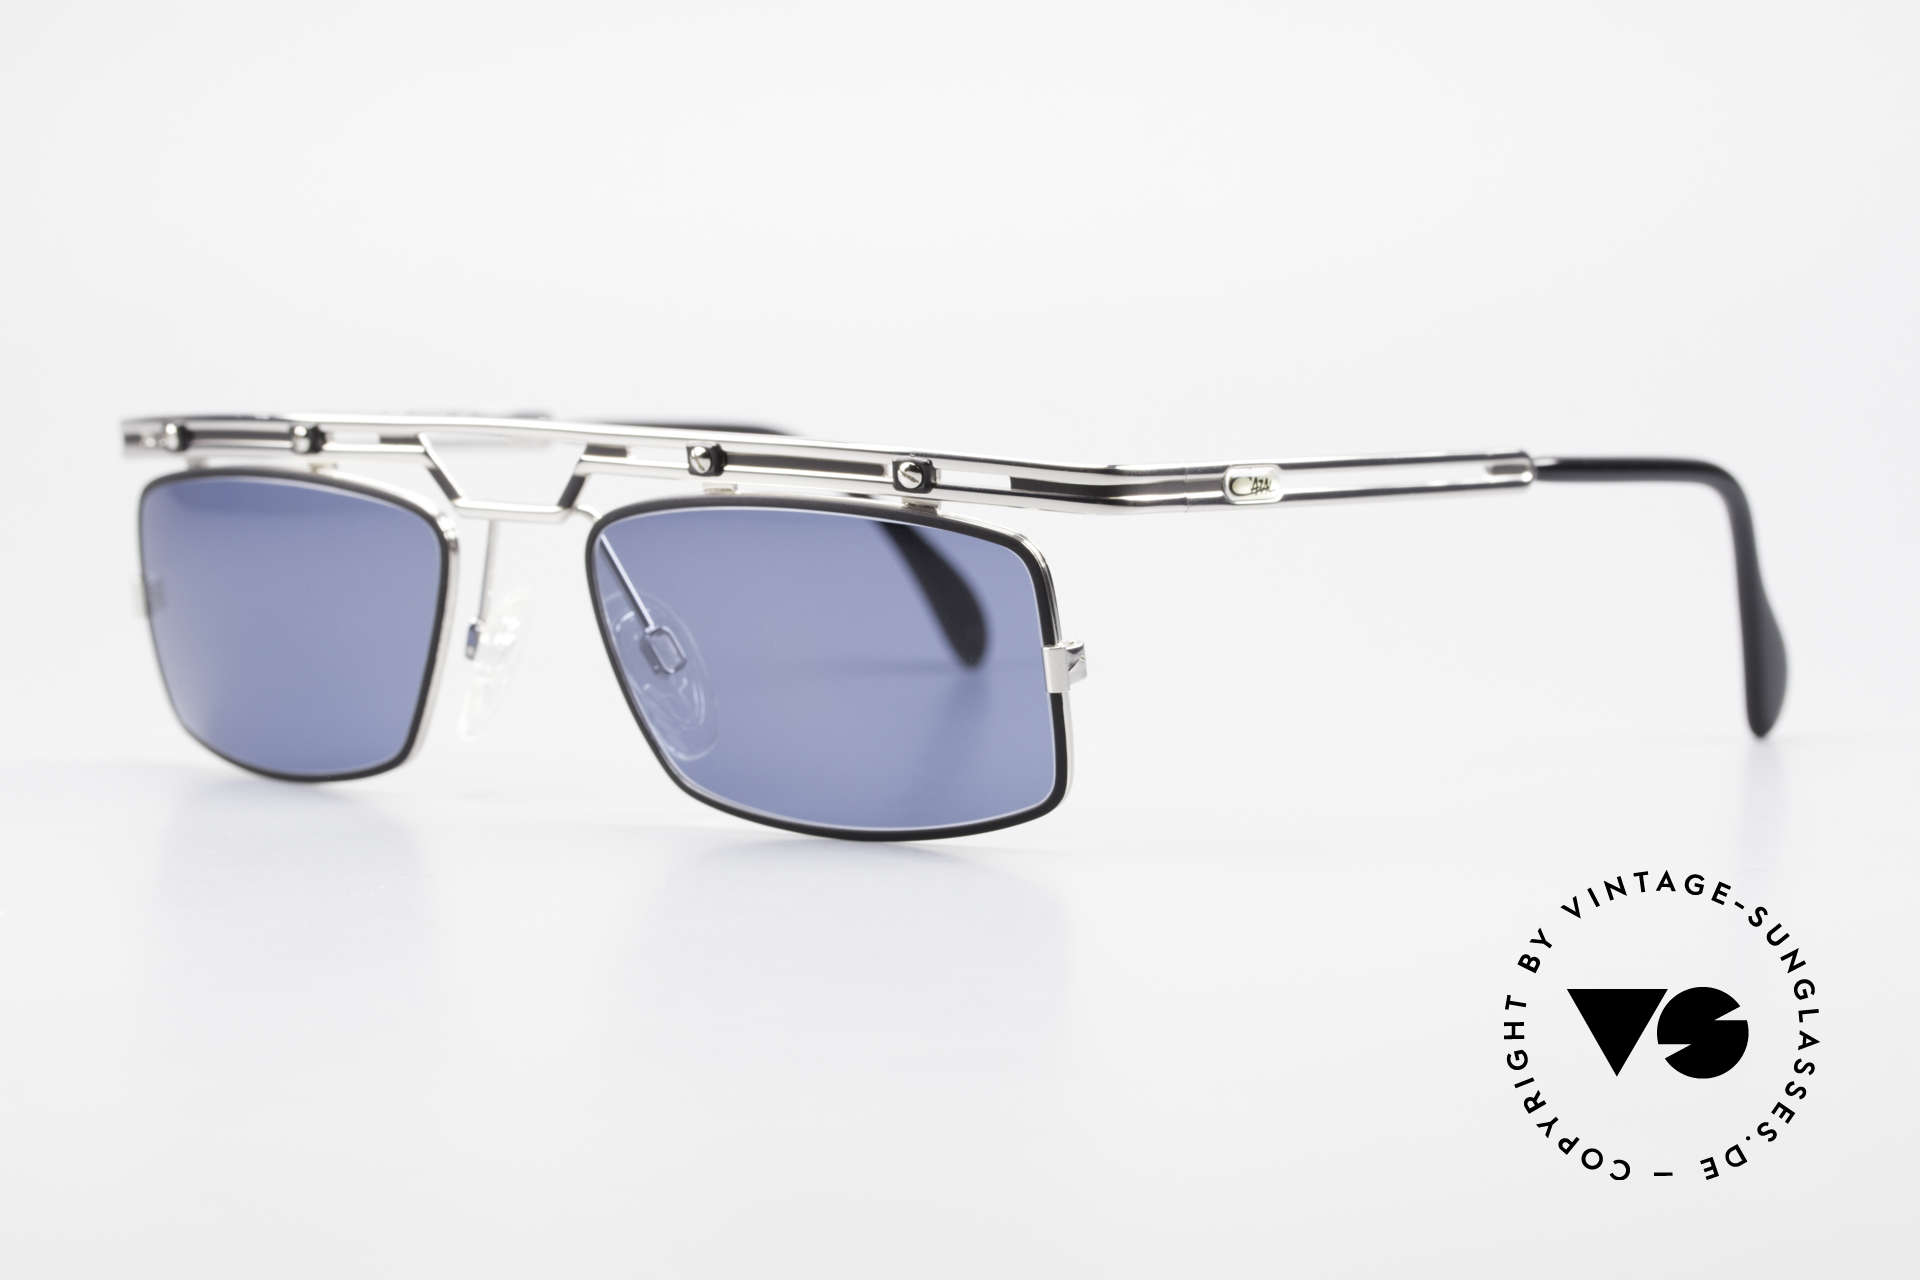 Cazal 975 Square Cazal Sunglasses 90's, great metalwork and overall craftmanship; durable!, Made for Men